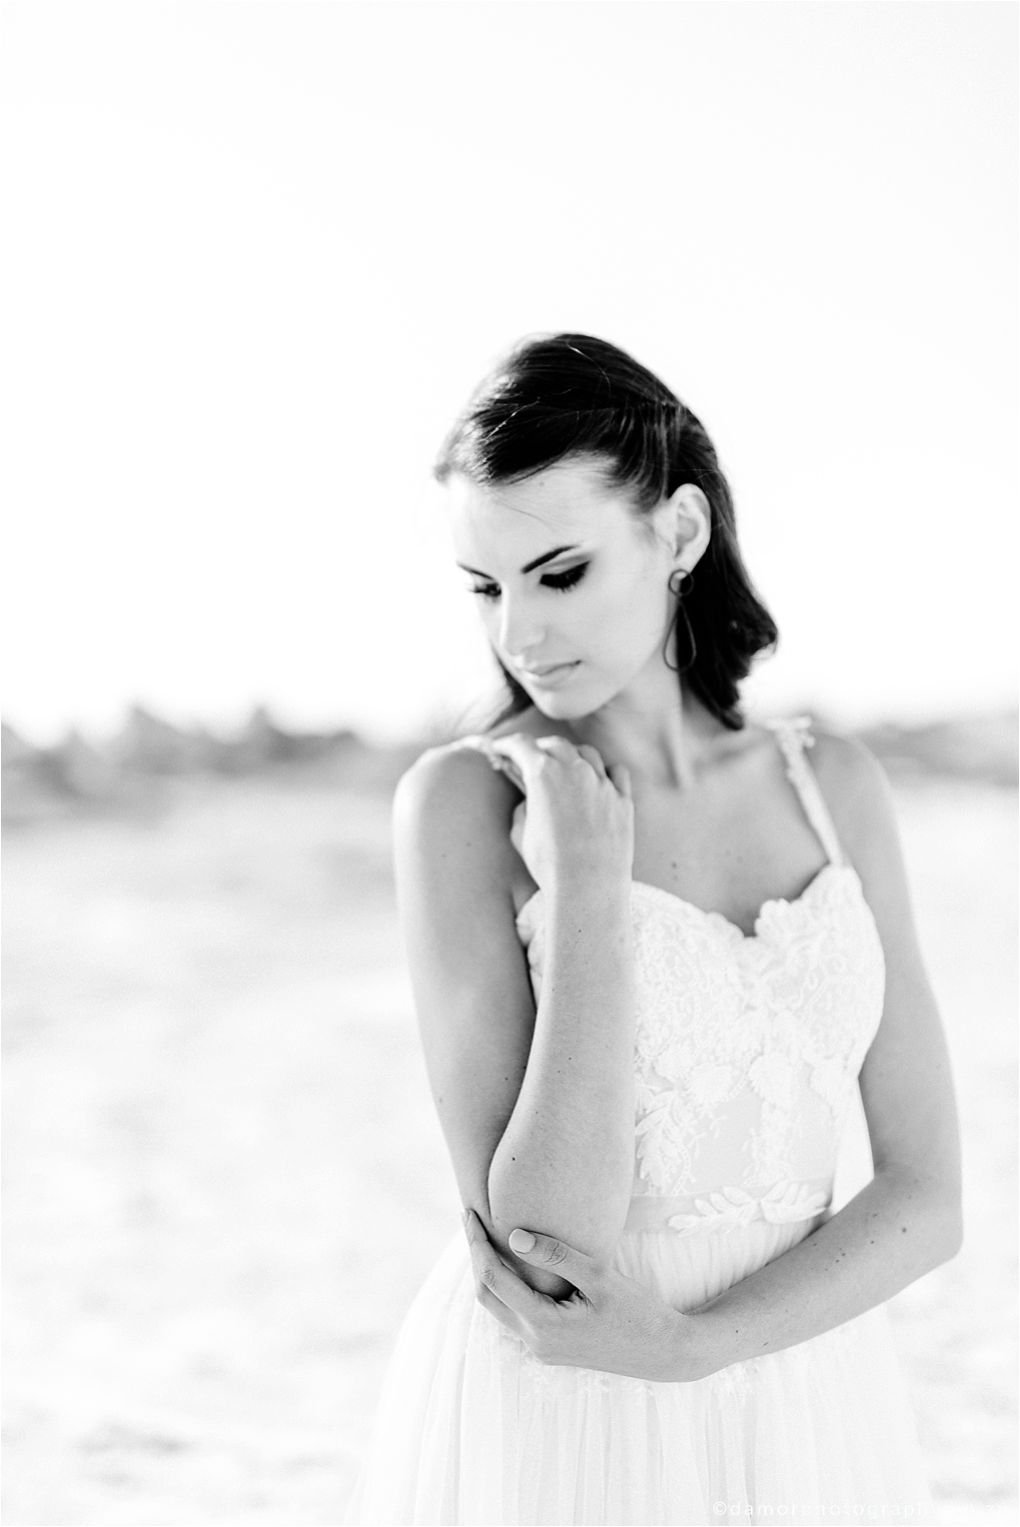 D'Amor Wedding and Portrait Photography - New Brand Launched 10